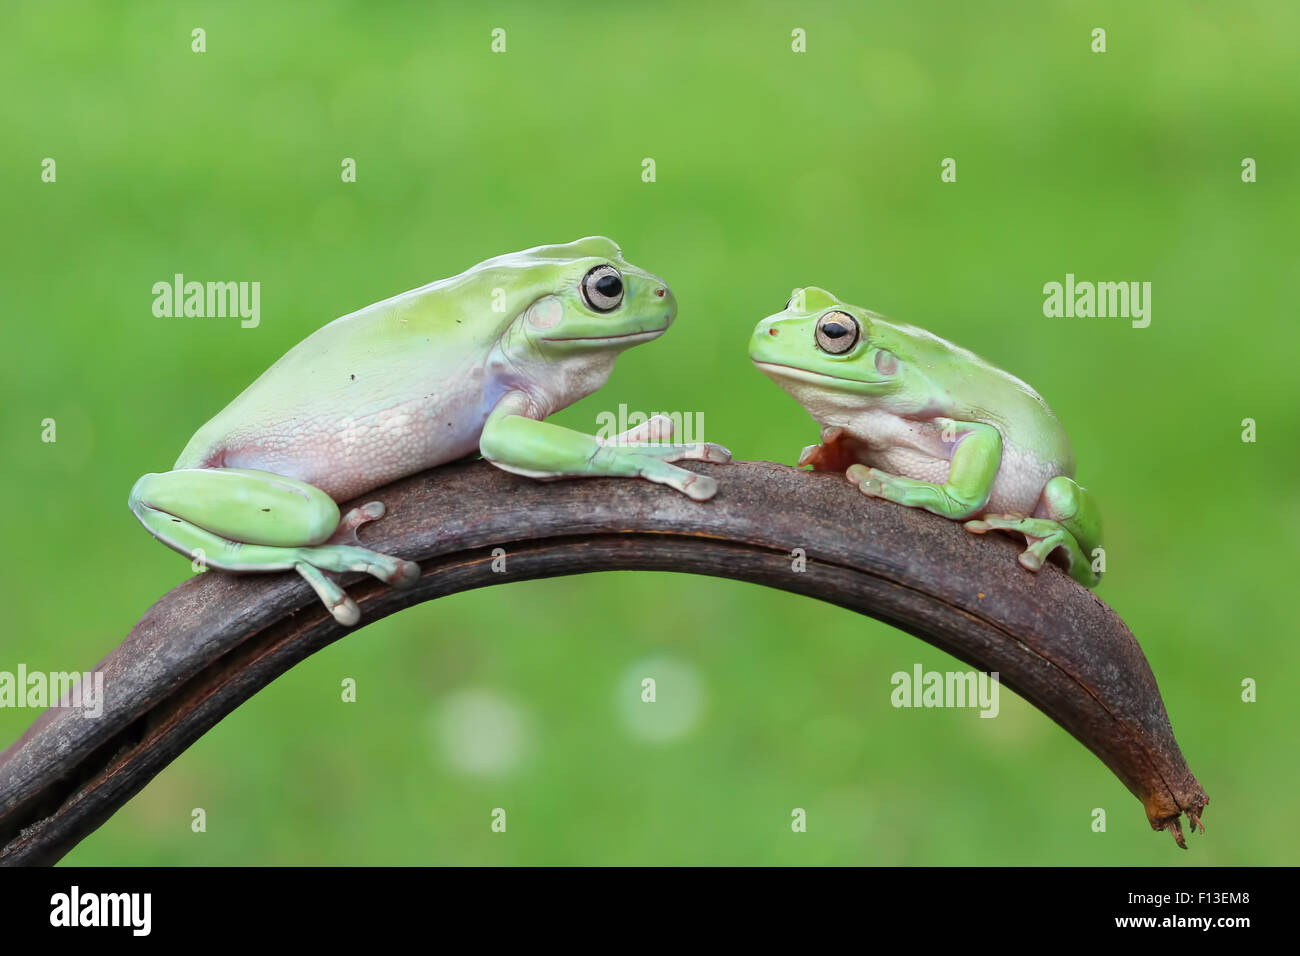 Two tree frogs sitting on a plant looking at each other - Stock Image